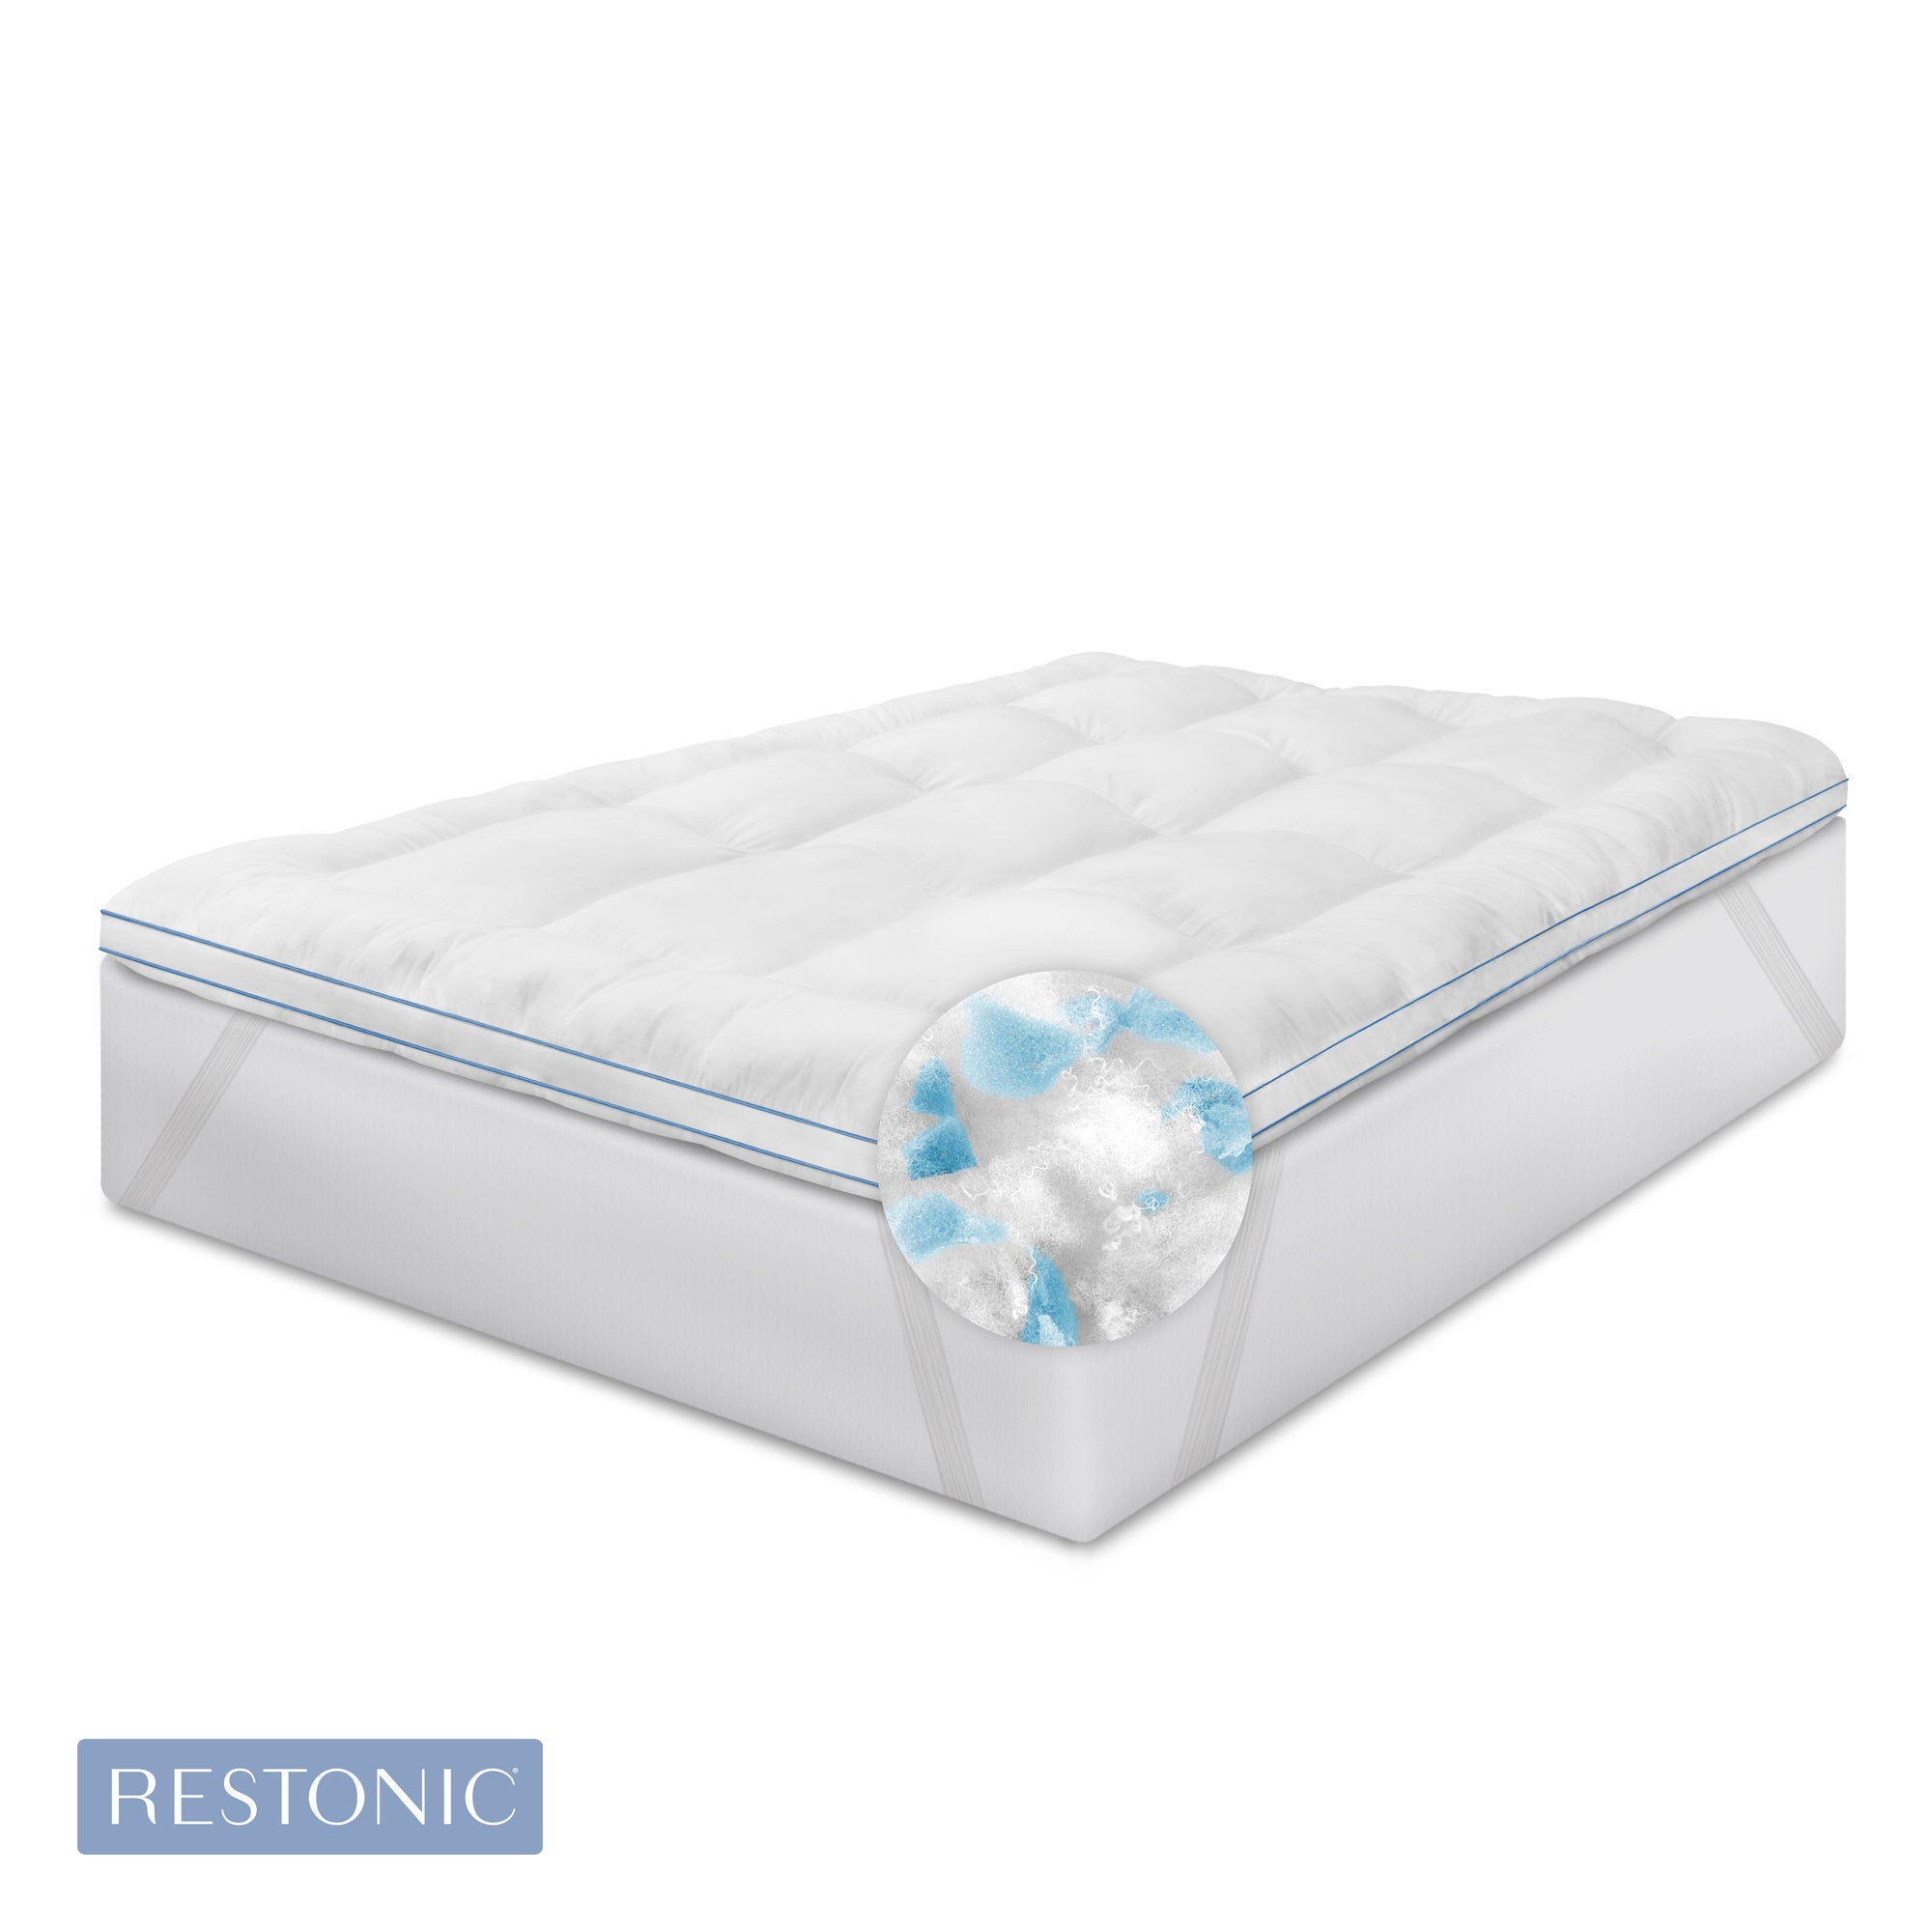 of curv modern best luxury fiber simmons size dream toppers pain for ventilated foam back eye and full gel lucid awesome cover wonderful favored catching i inch mattress serta topper form memory